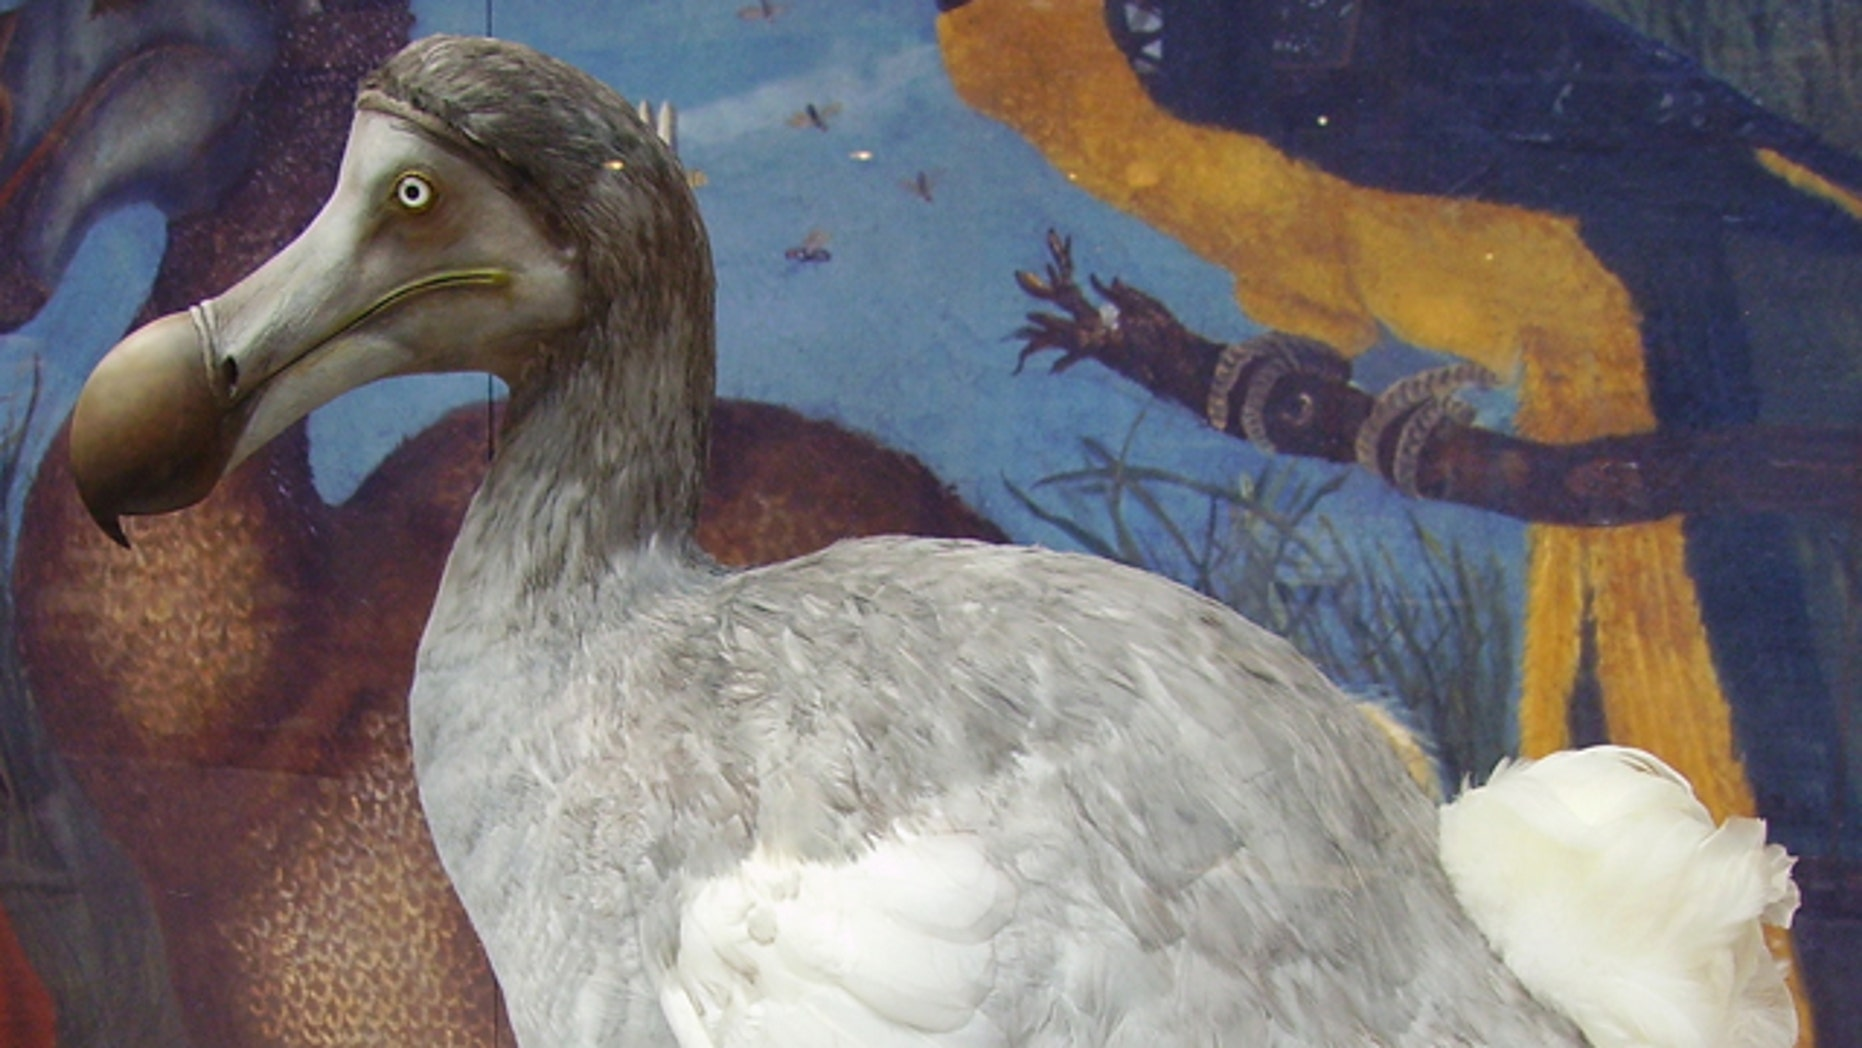 The flightless dodo went extinct in the 17th century, as a direct result of mankind's actions. Could modern science have predicted its risk -- and saved the dodo?